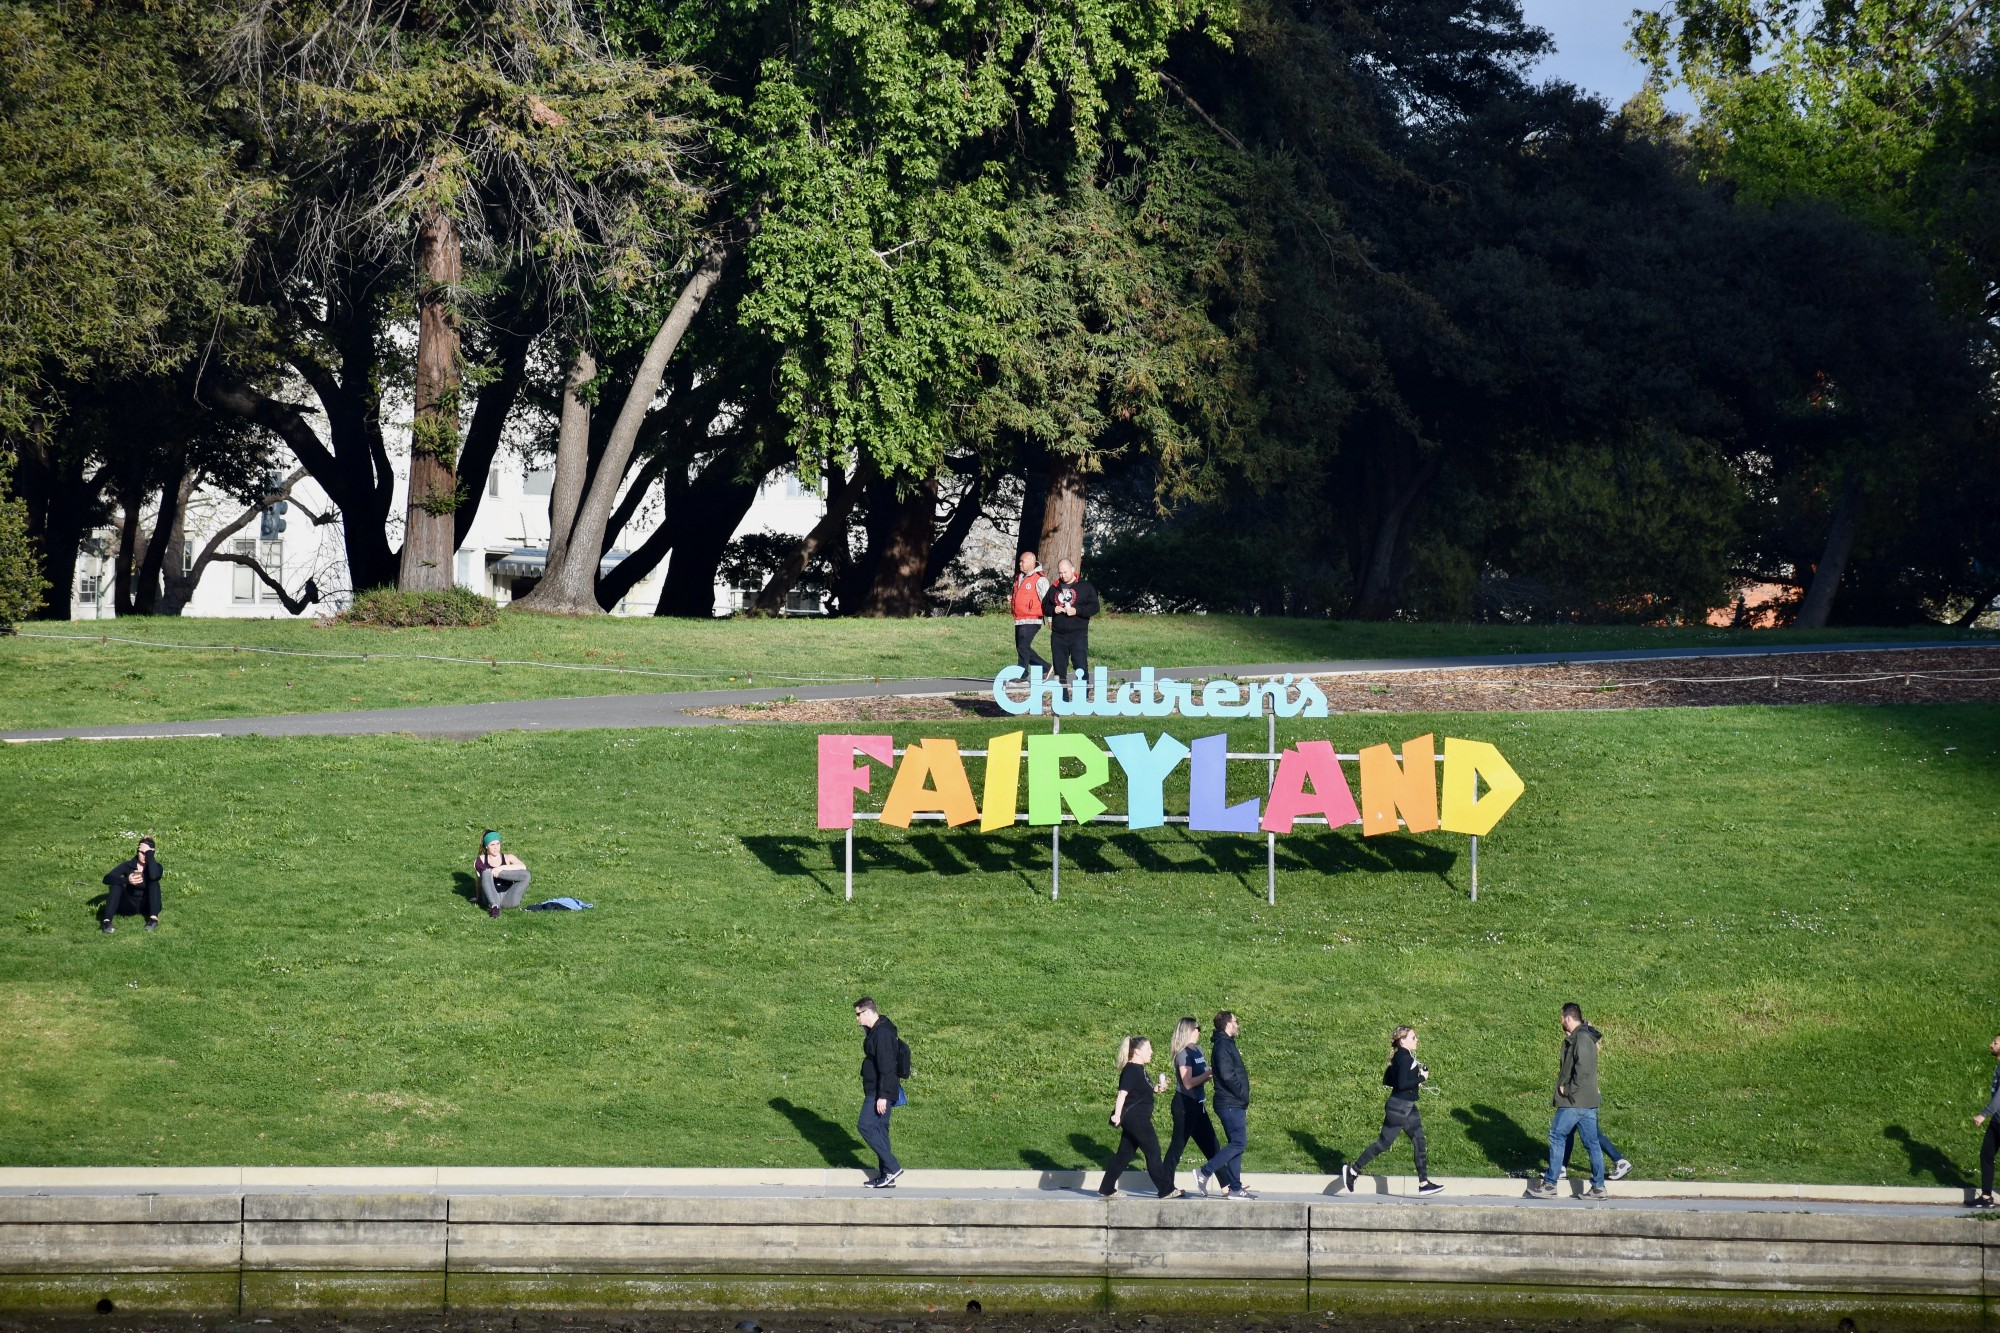 People walking under the big Children's Fairyland sign.